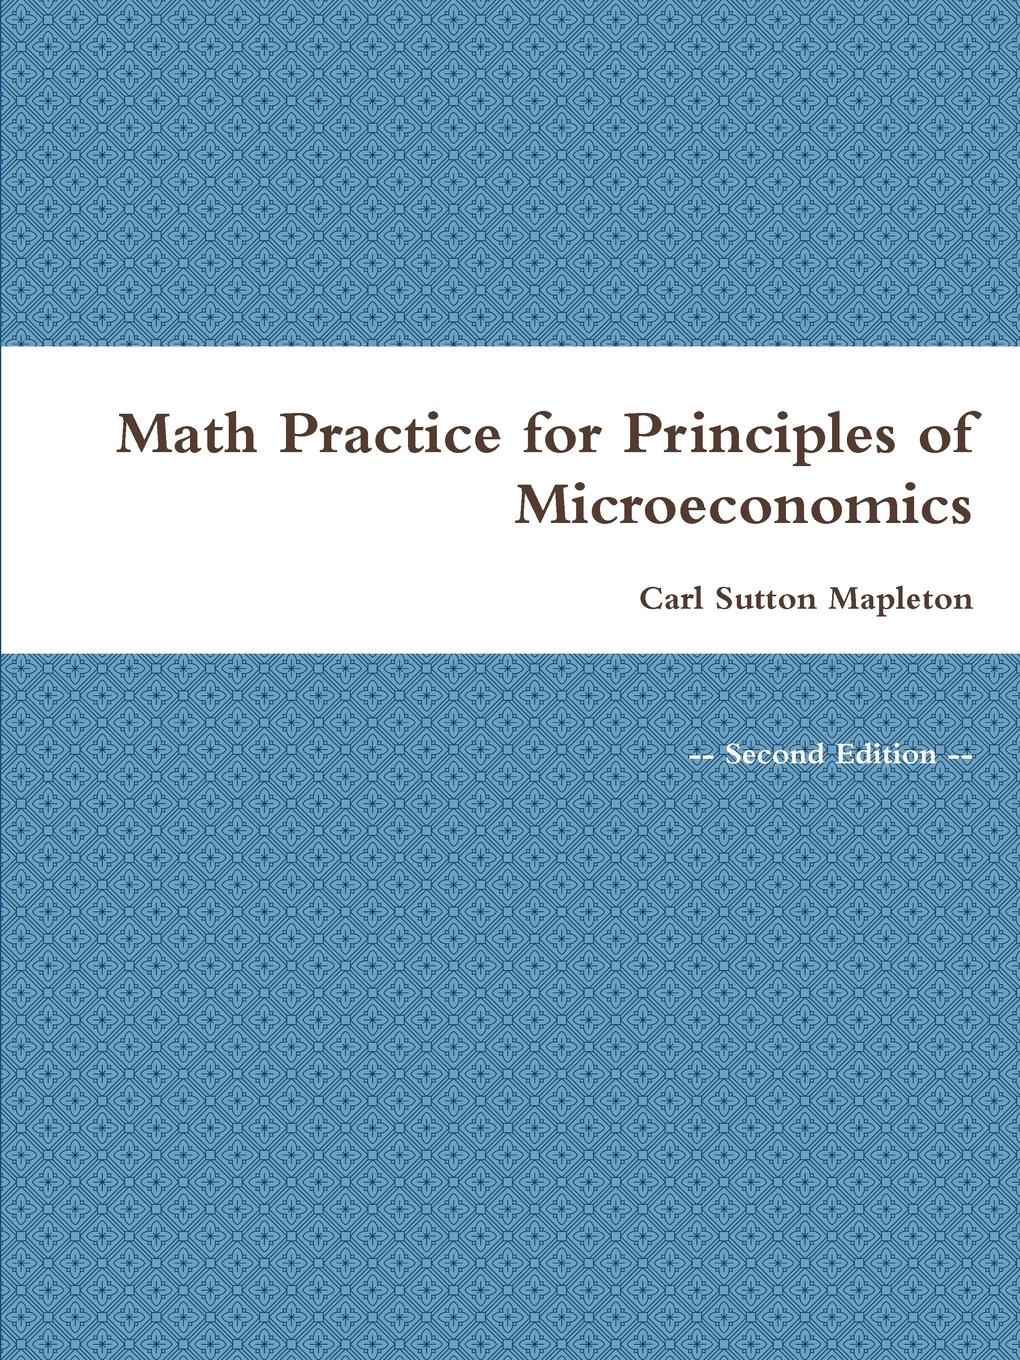 Carl Sutton Mapleton Math Practice for Principles of Microeconomics ma allen kuang amber geometry 1 001 practice problems for dummies free online practice